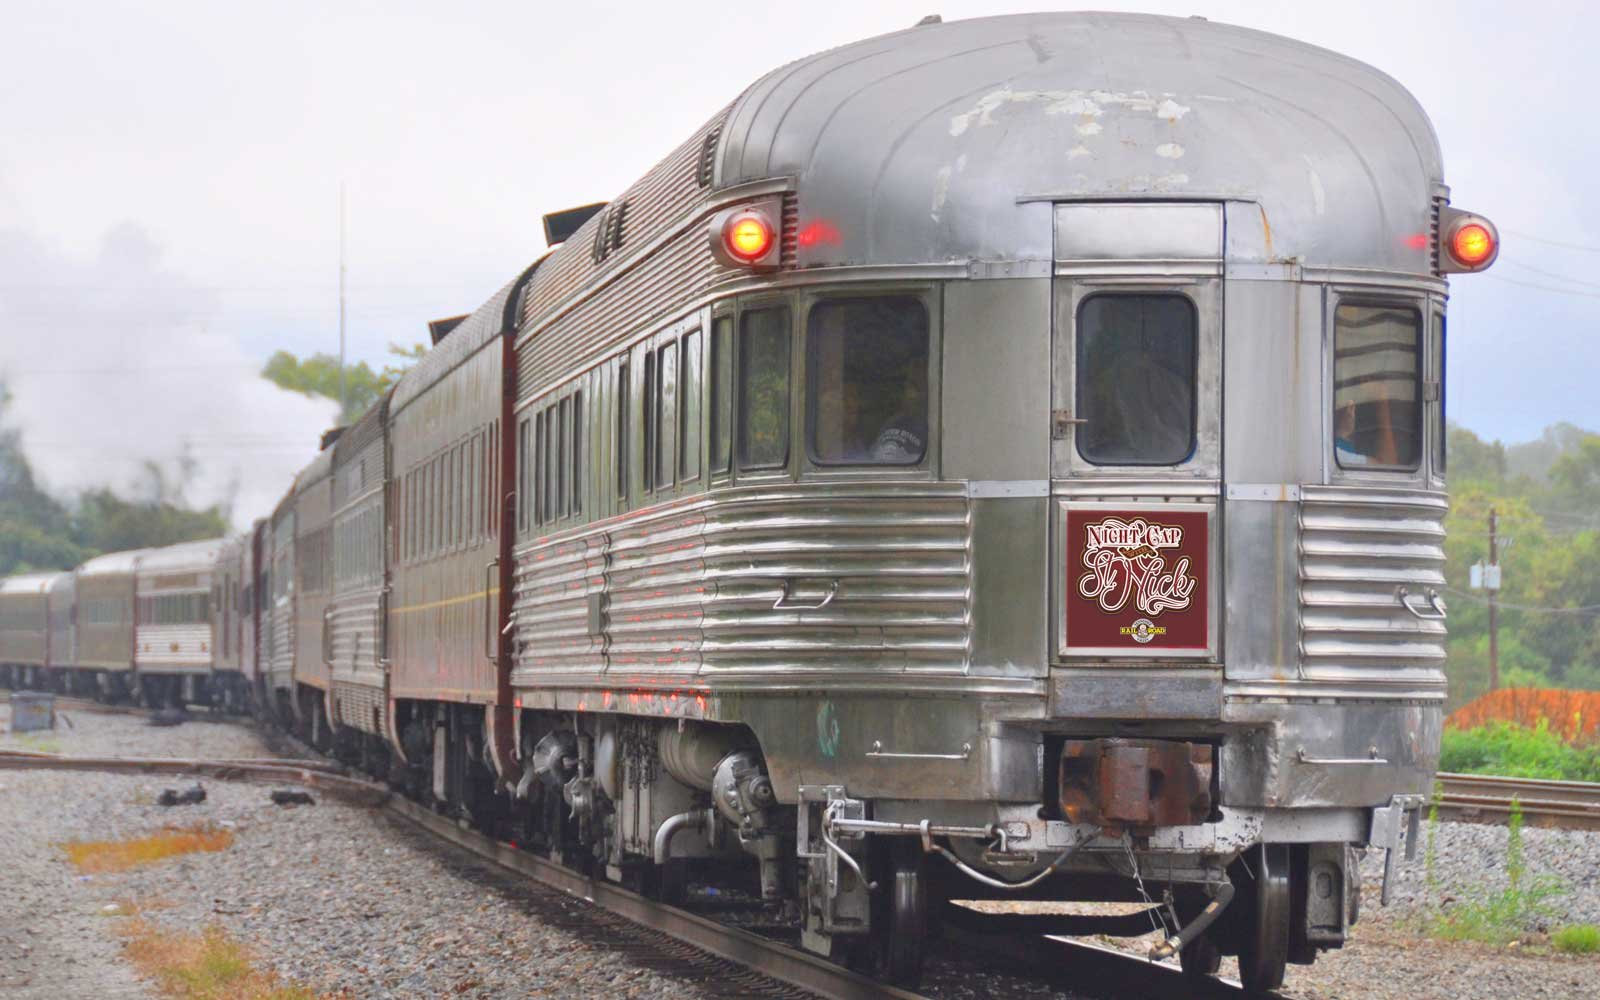 Enjoy holiday-themed drinks on a train trip with the Tennessee Valley Railroad Museum.